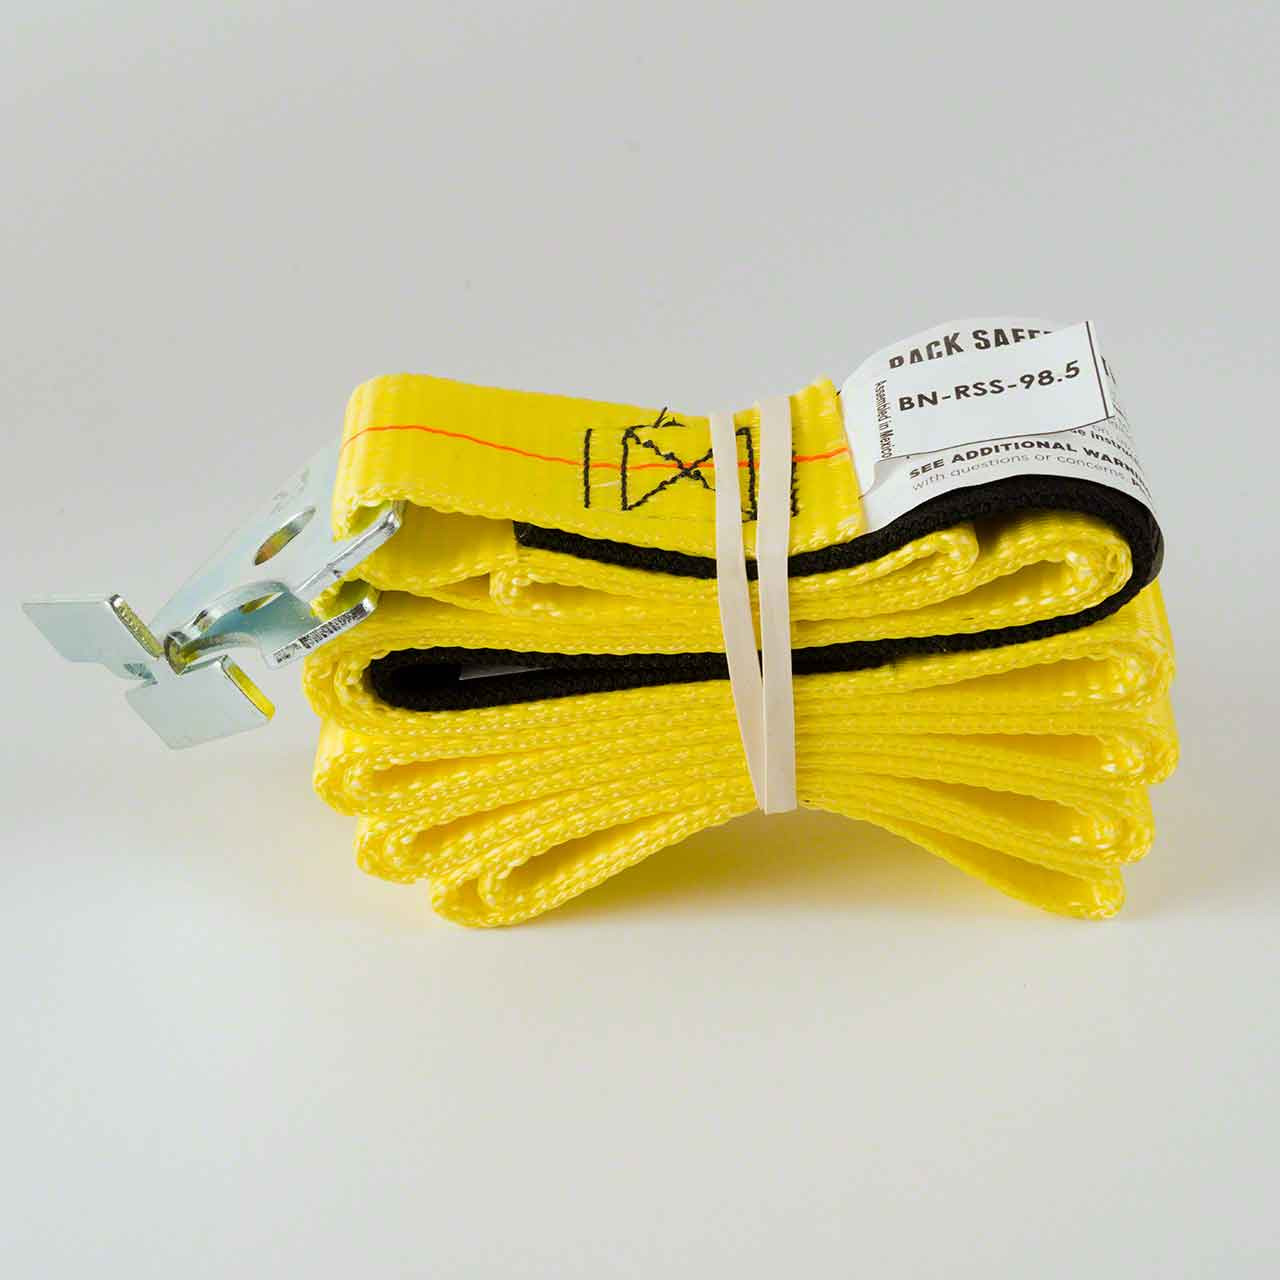 The pallet racking safety strap comes with the hardware to fit your pallet rack already attached